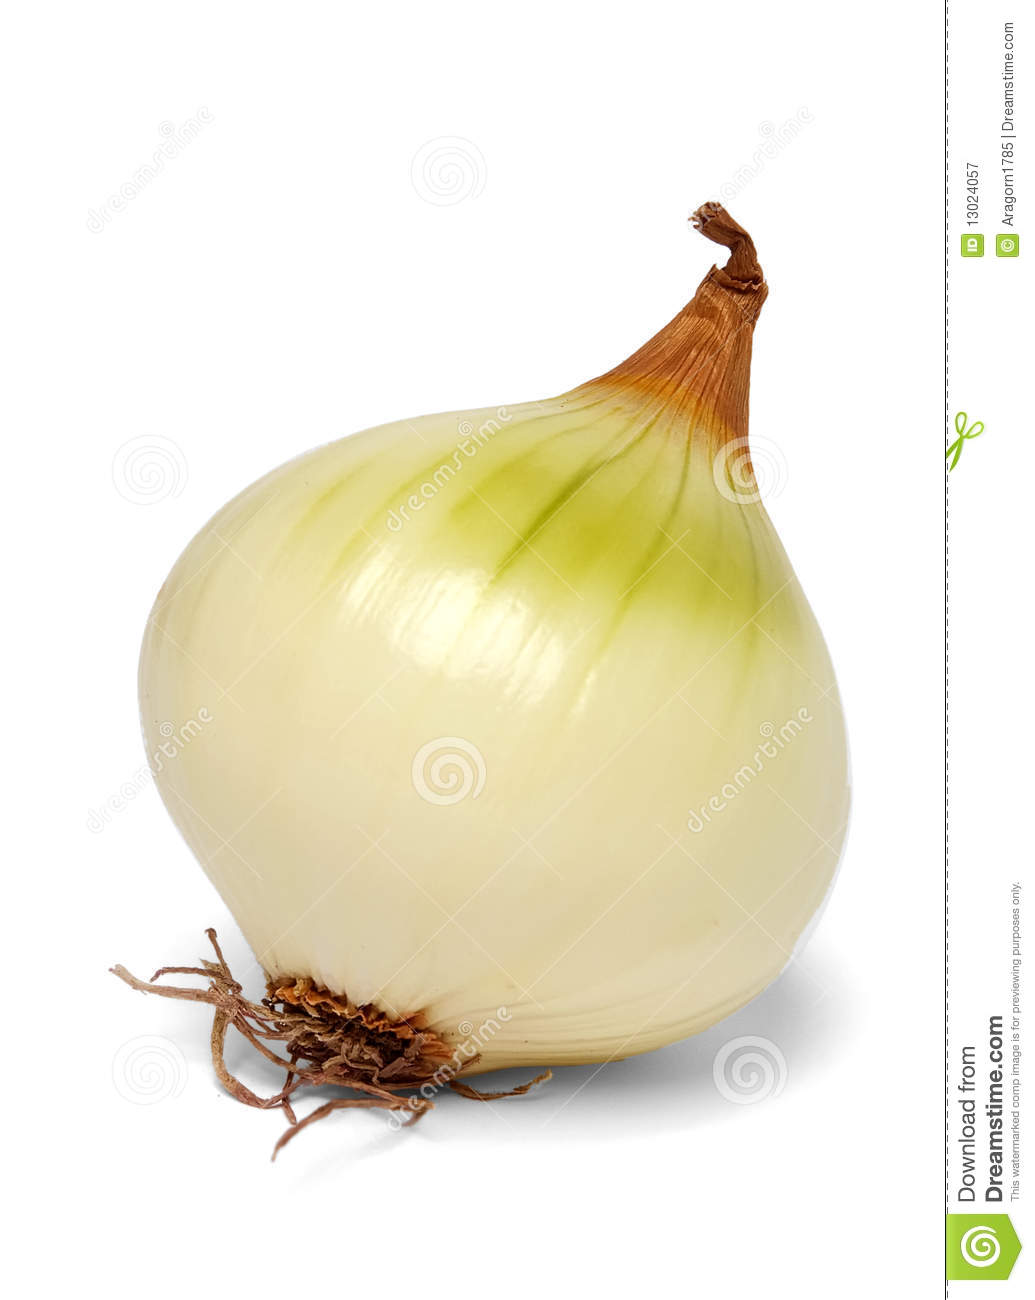 singles in cebolla 1 spanish word for onion 2 term used to describe a chick with a hot body but an ugly face she looks like an onion after you take her skirt and tie it up over her head, thus allowing you to have your way with her and not get turned off.